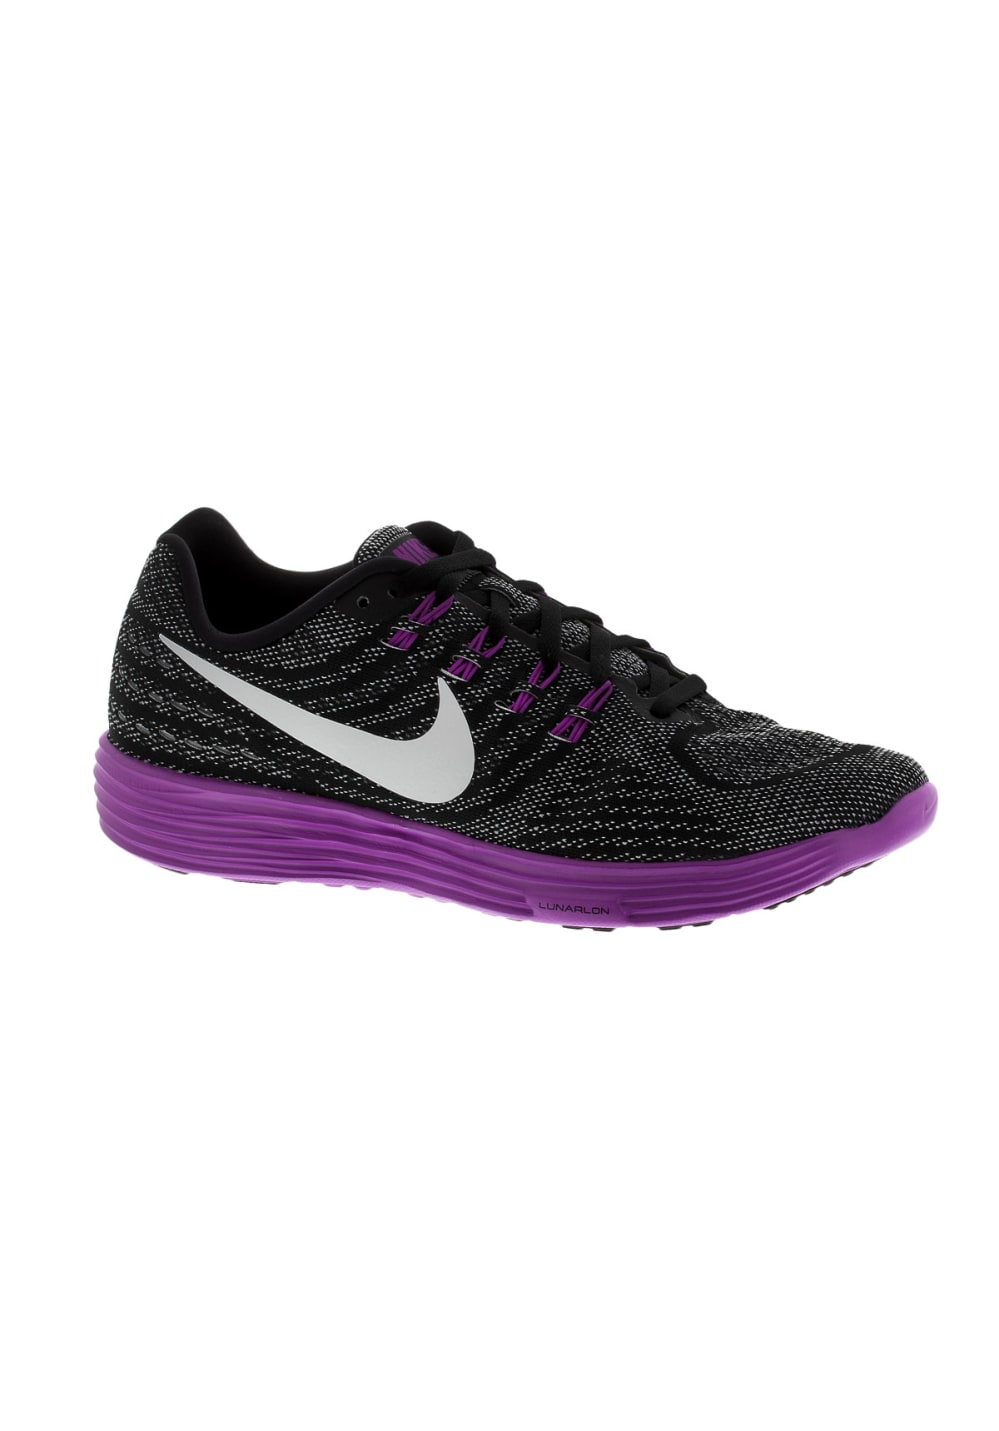 c68822f7d7b Nike Lunartempo 2 - Running shoes for Women - Black